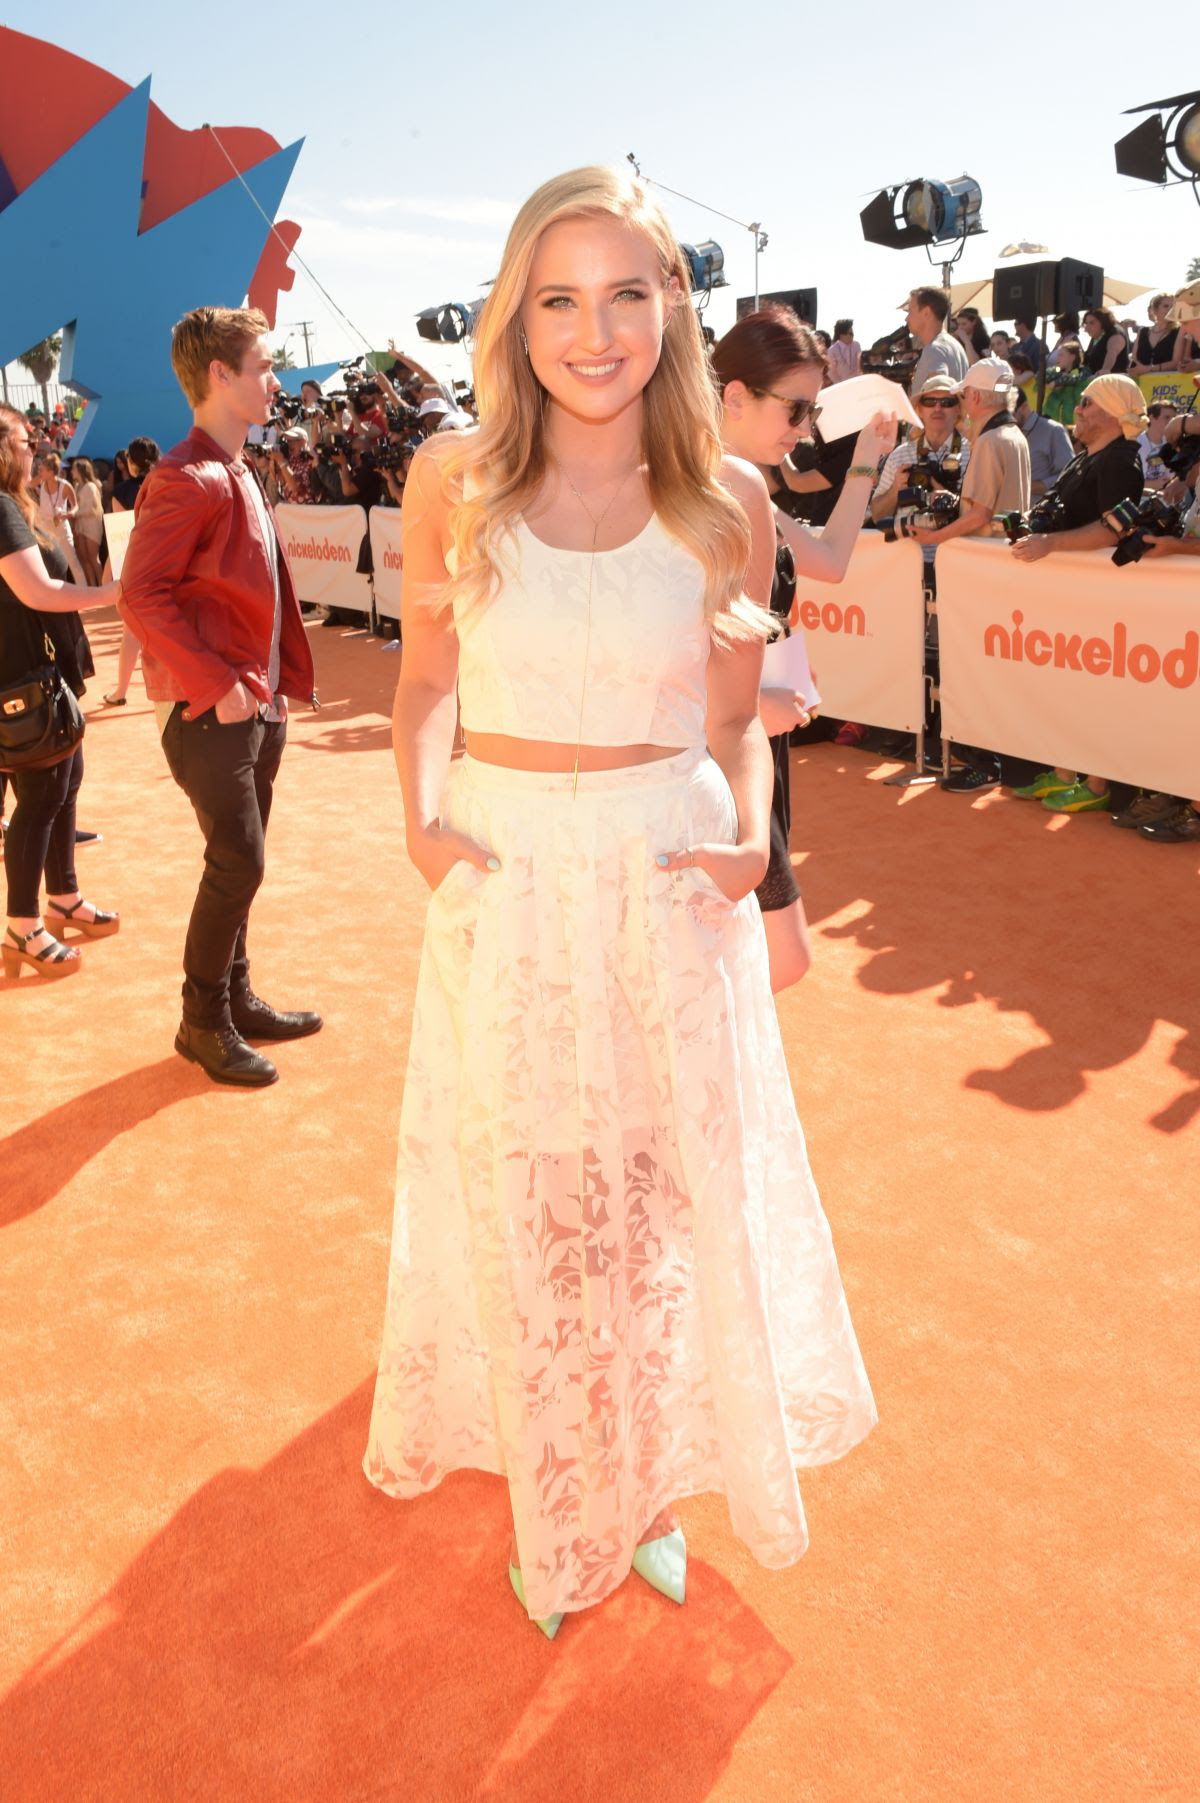 VERONICA DUNNE at 2015 Nickelodeon Kids Choice Awards in Inglewood